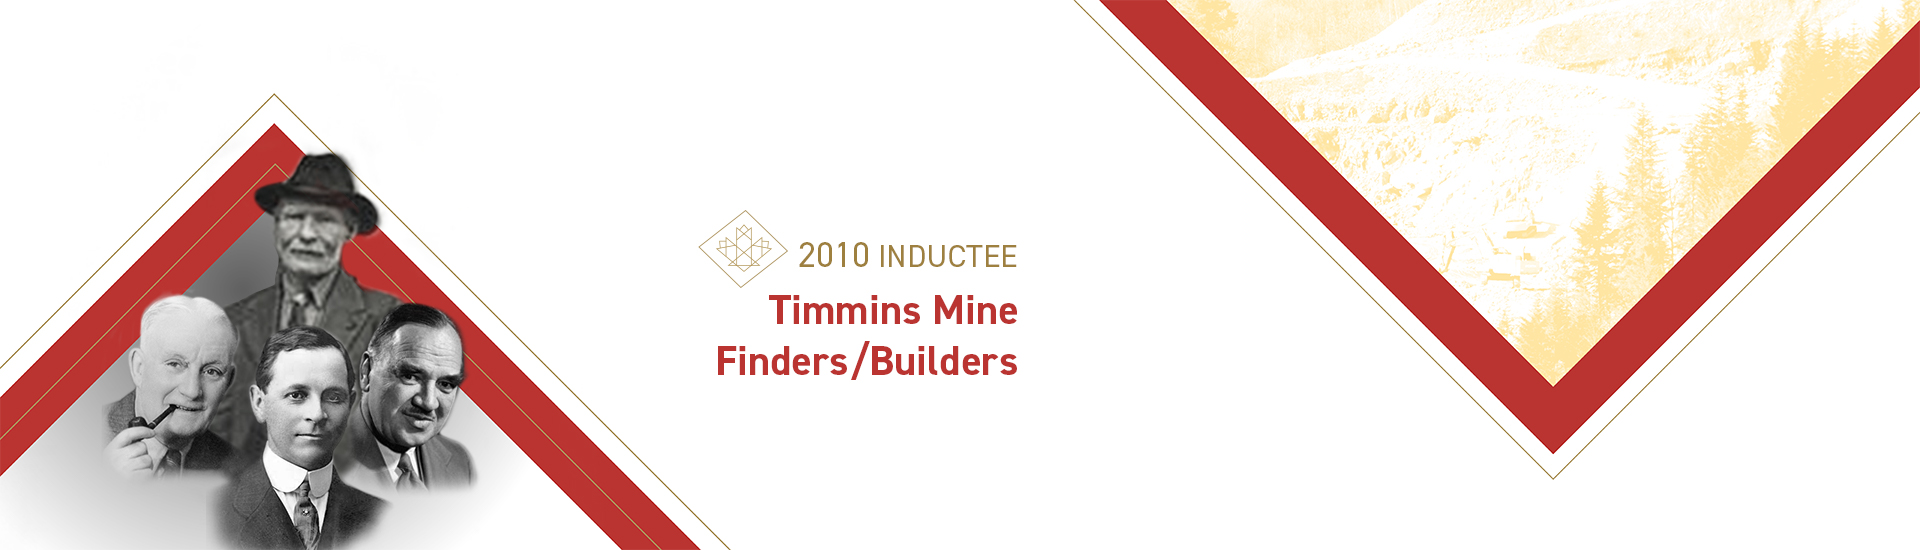 Timmins Mine Finders / Builders